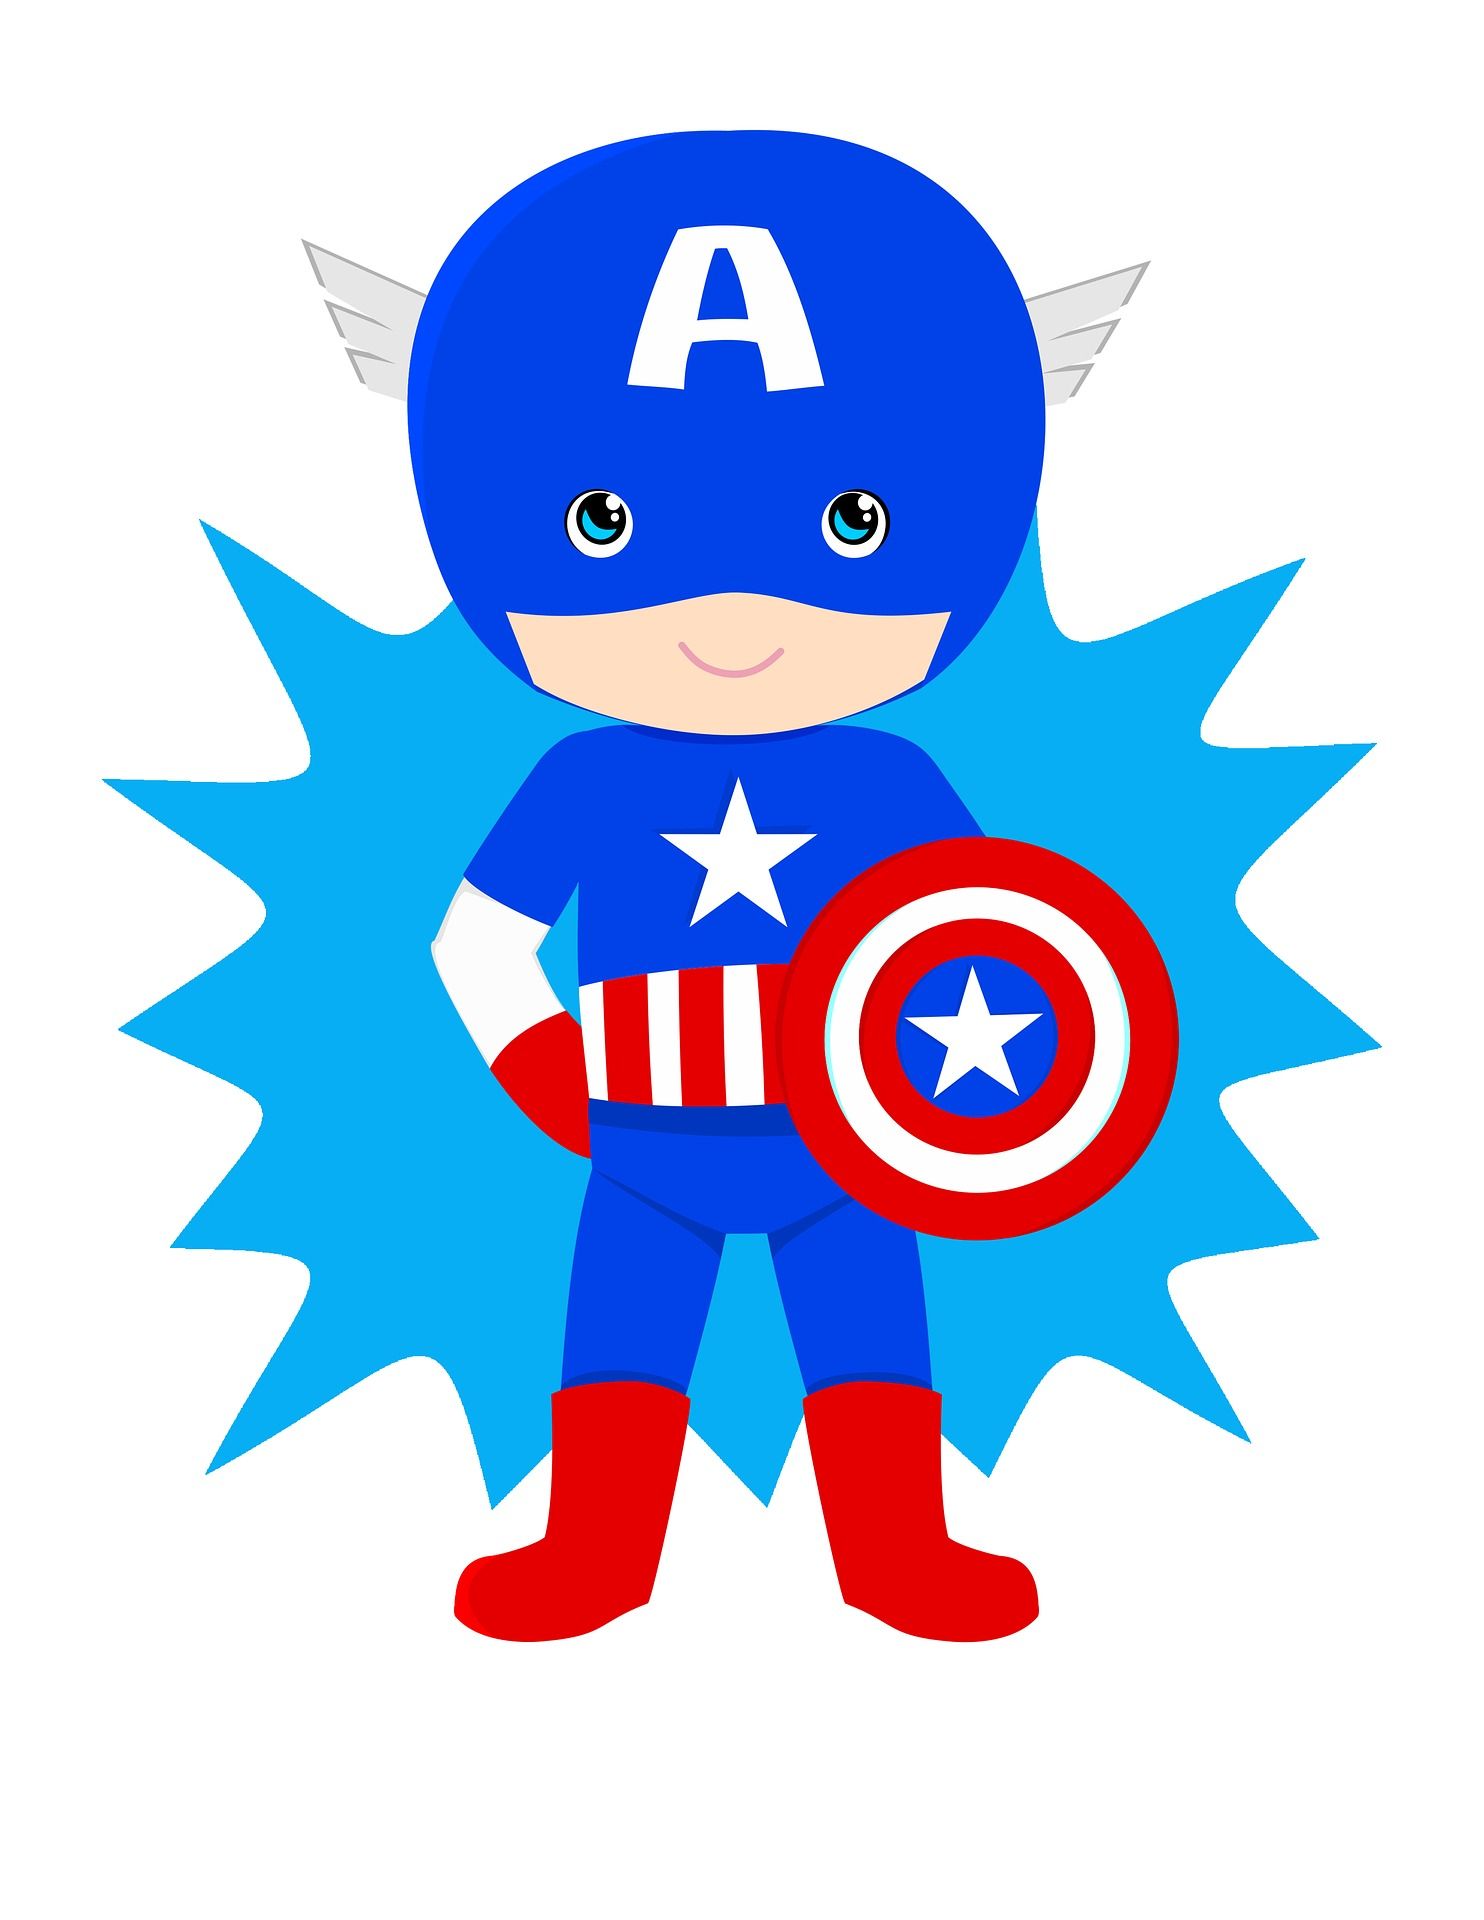 Cartoon of Captain America Character wearing a blue and red superhero outfit